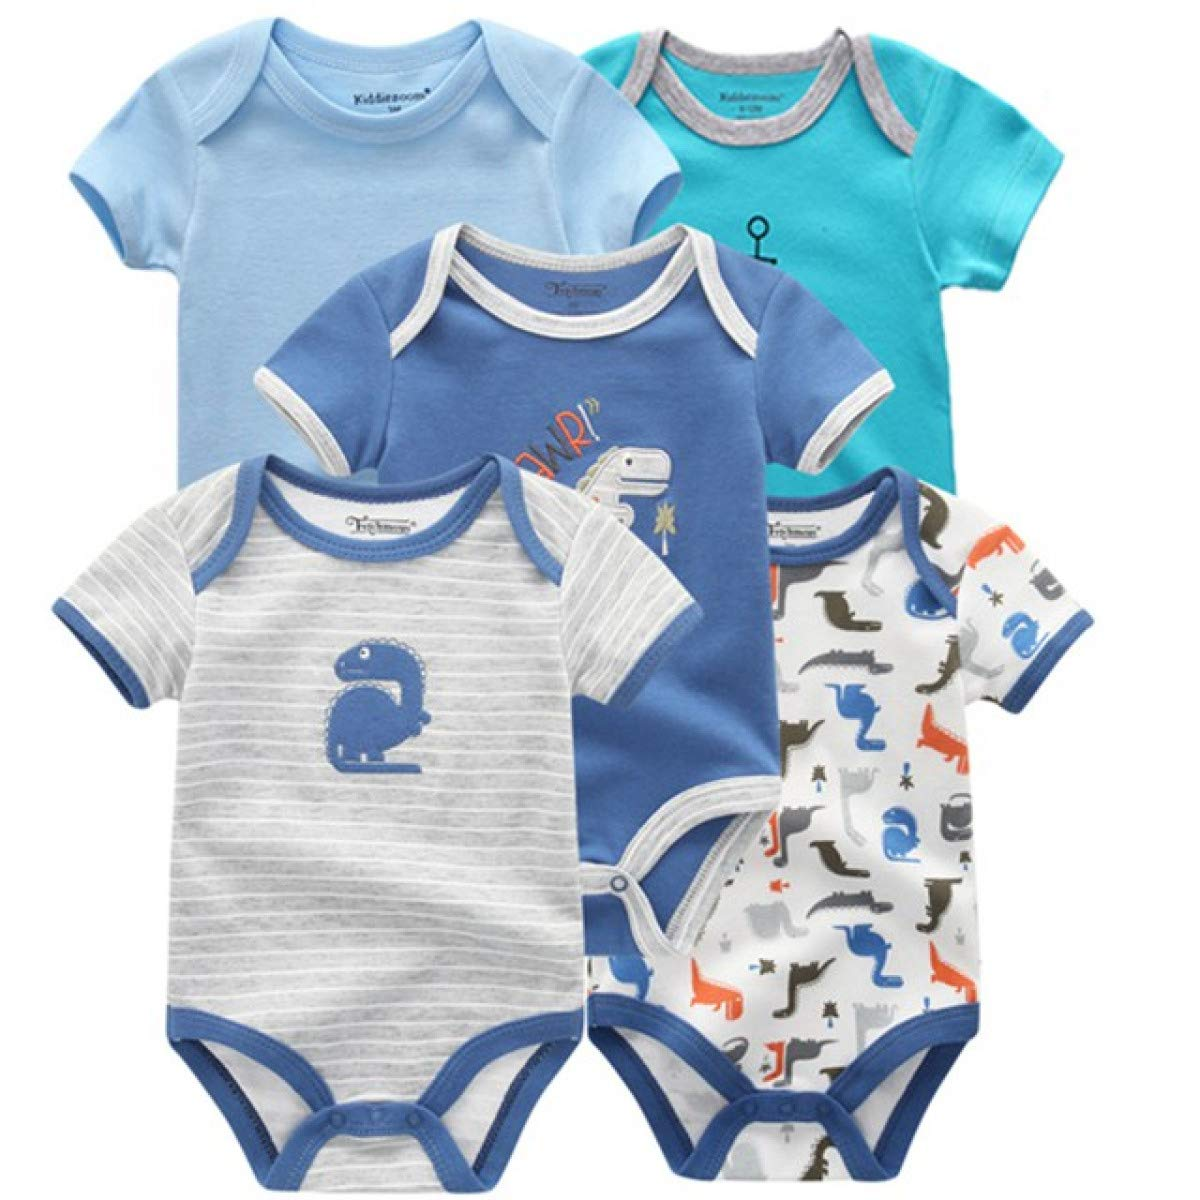 MELLOW SHOP 5PCS//Lot Newborn 100/% Cotton 0-12M Baby Boys Clothes Bodysuits Girls Clothing Baby Girls